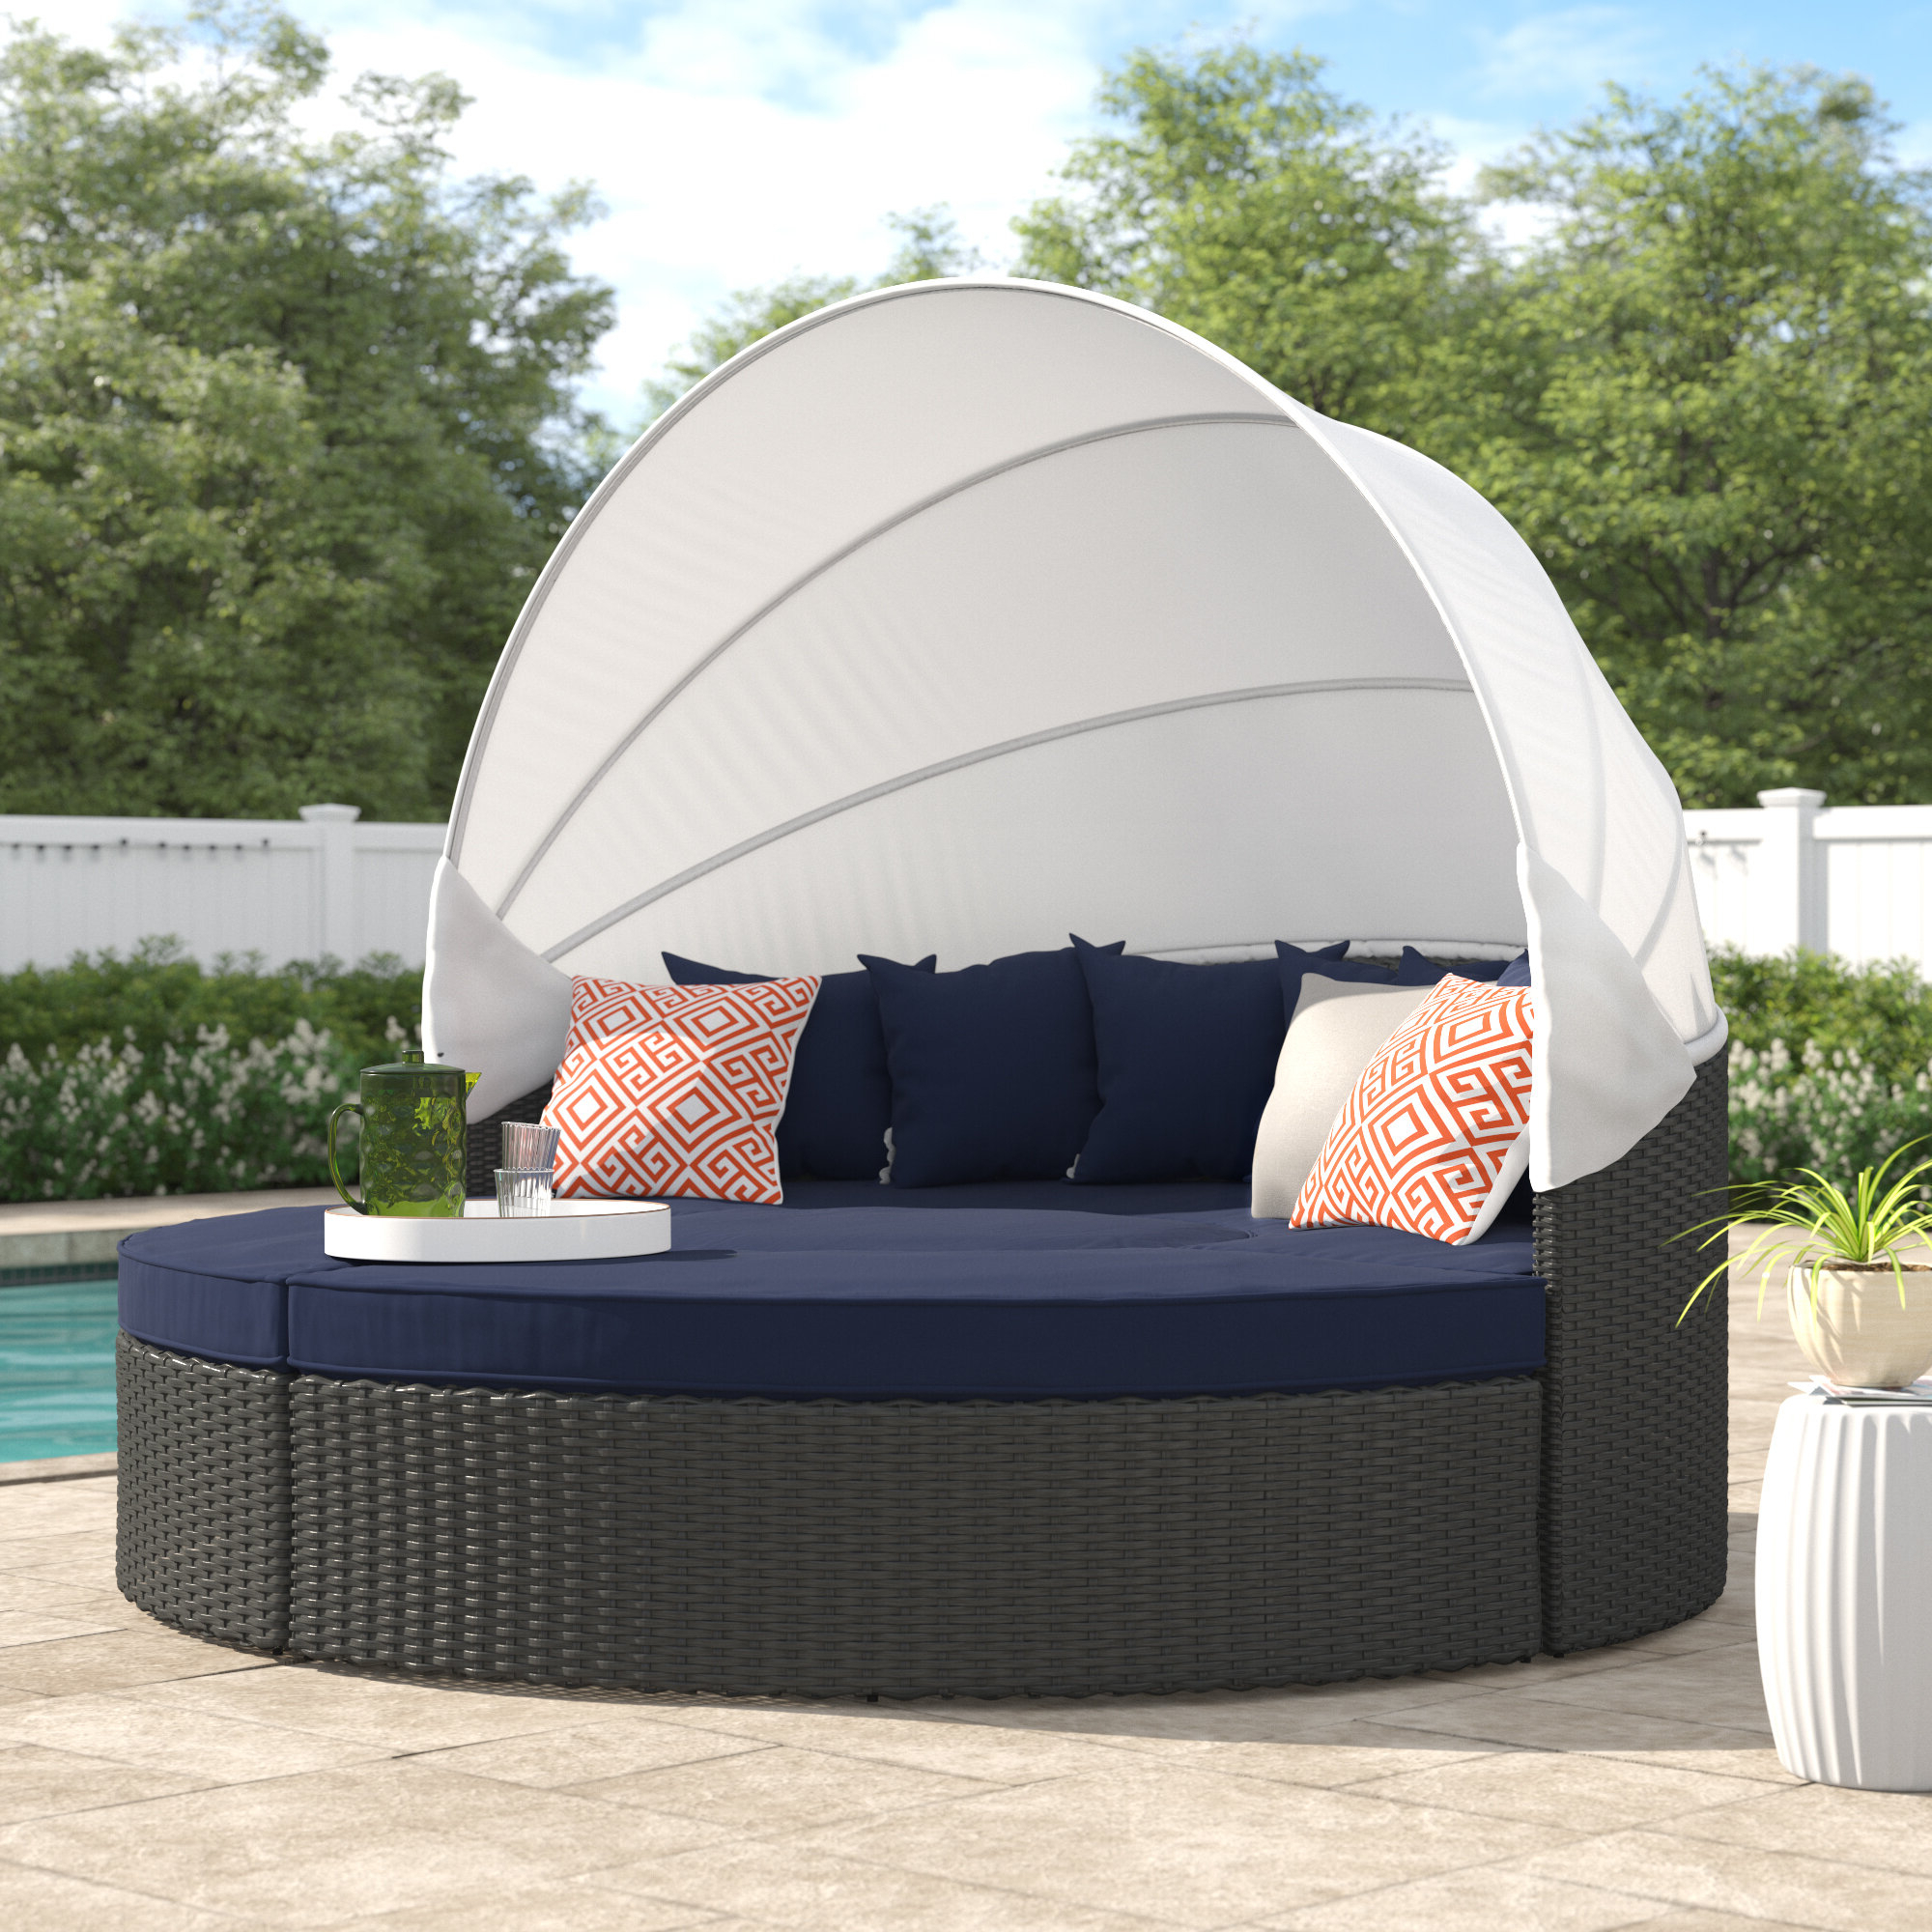 2020 Carrasco Patio Daybeds With Cushions With Regard To Tripp Patio Daybed With Sunbrella Cushions (View 1 of 20)